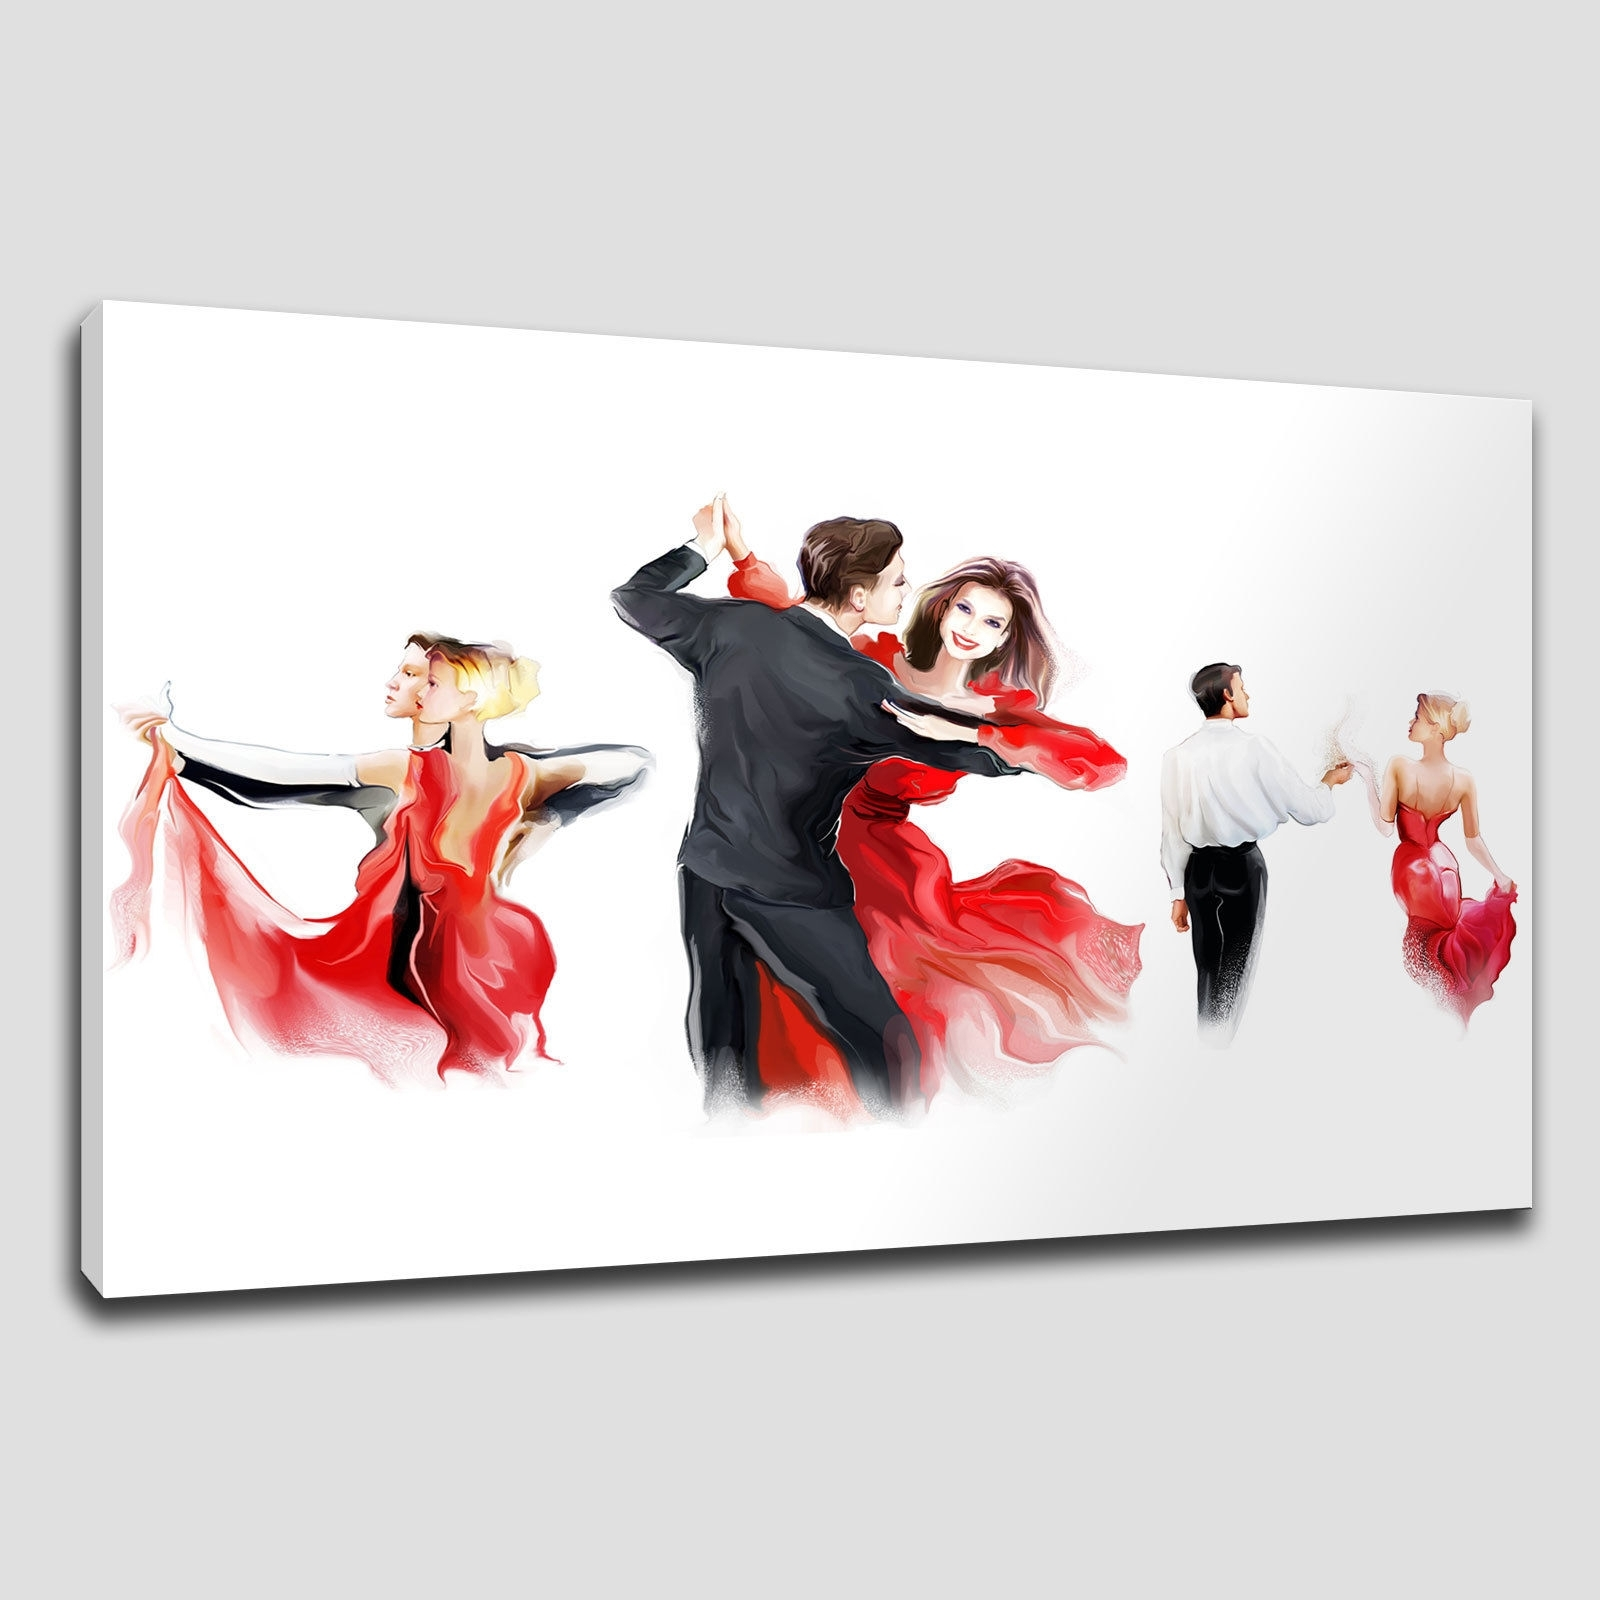 Best And Newest Wall Art: Extraordinary Red Canvas Wall Art Wall Art In Red, Black Inside Large Red Canvas Wall Art (View 10 of 15)